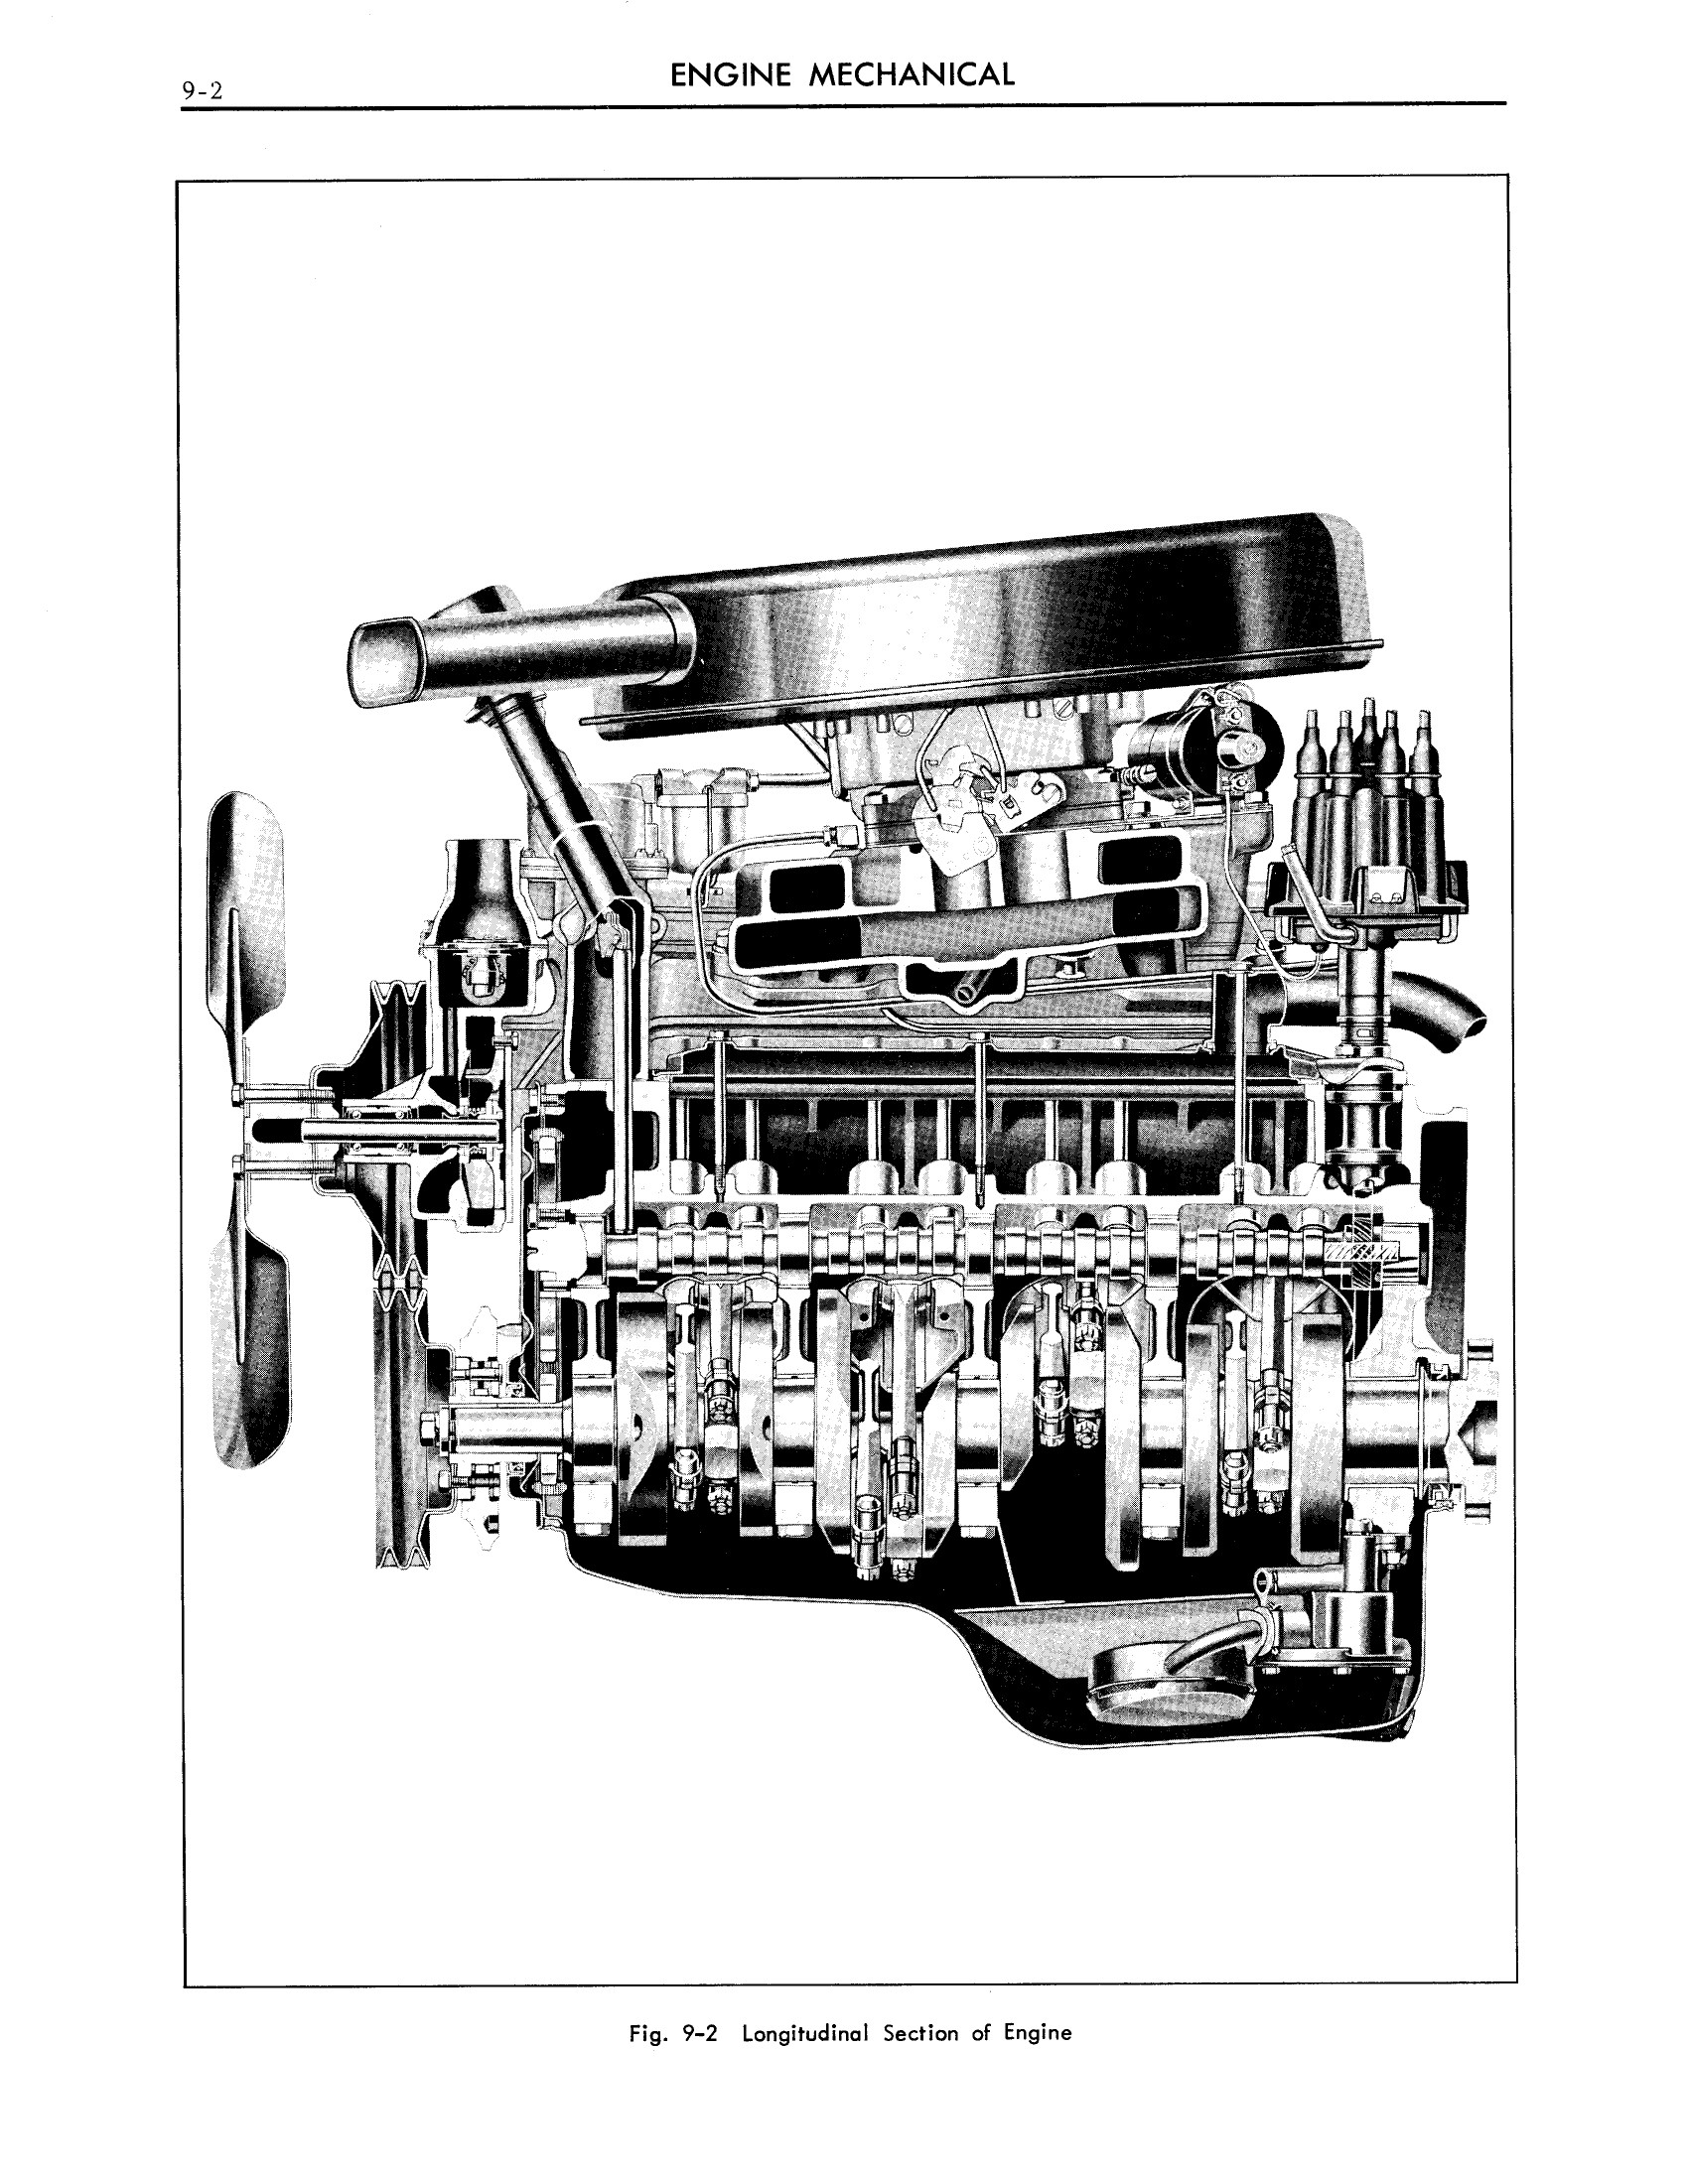 1959 Cadillac Shop Manual- Engine Mechanical Page 2 of 34